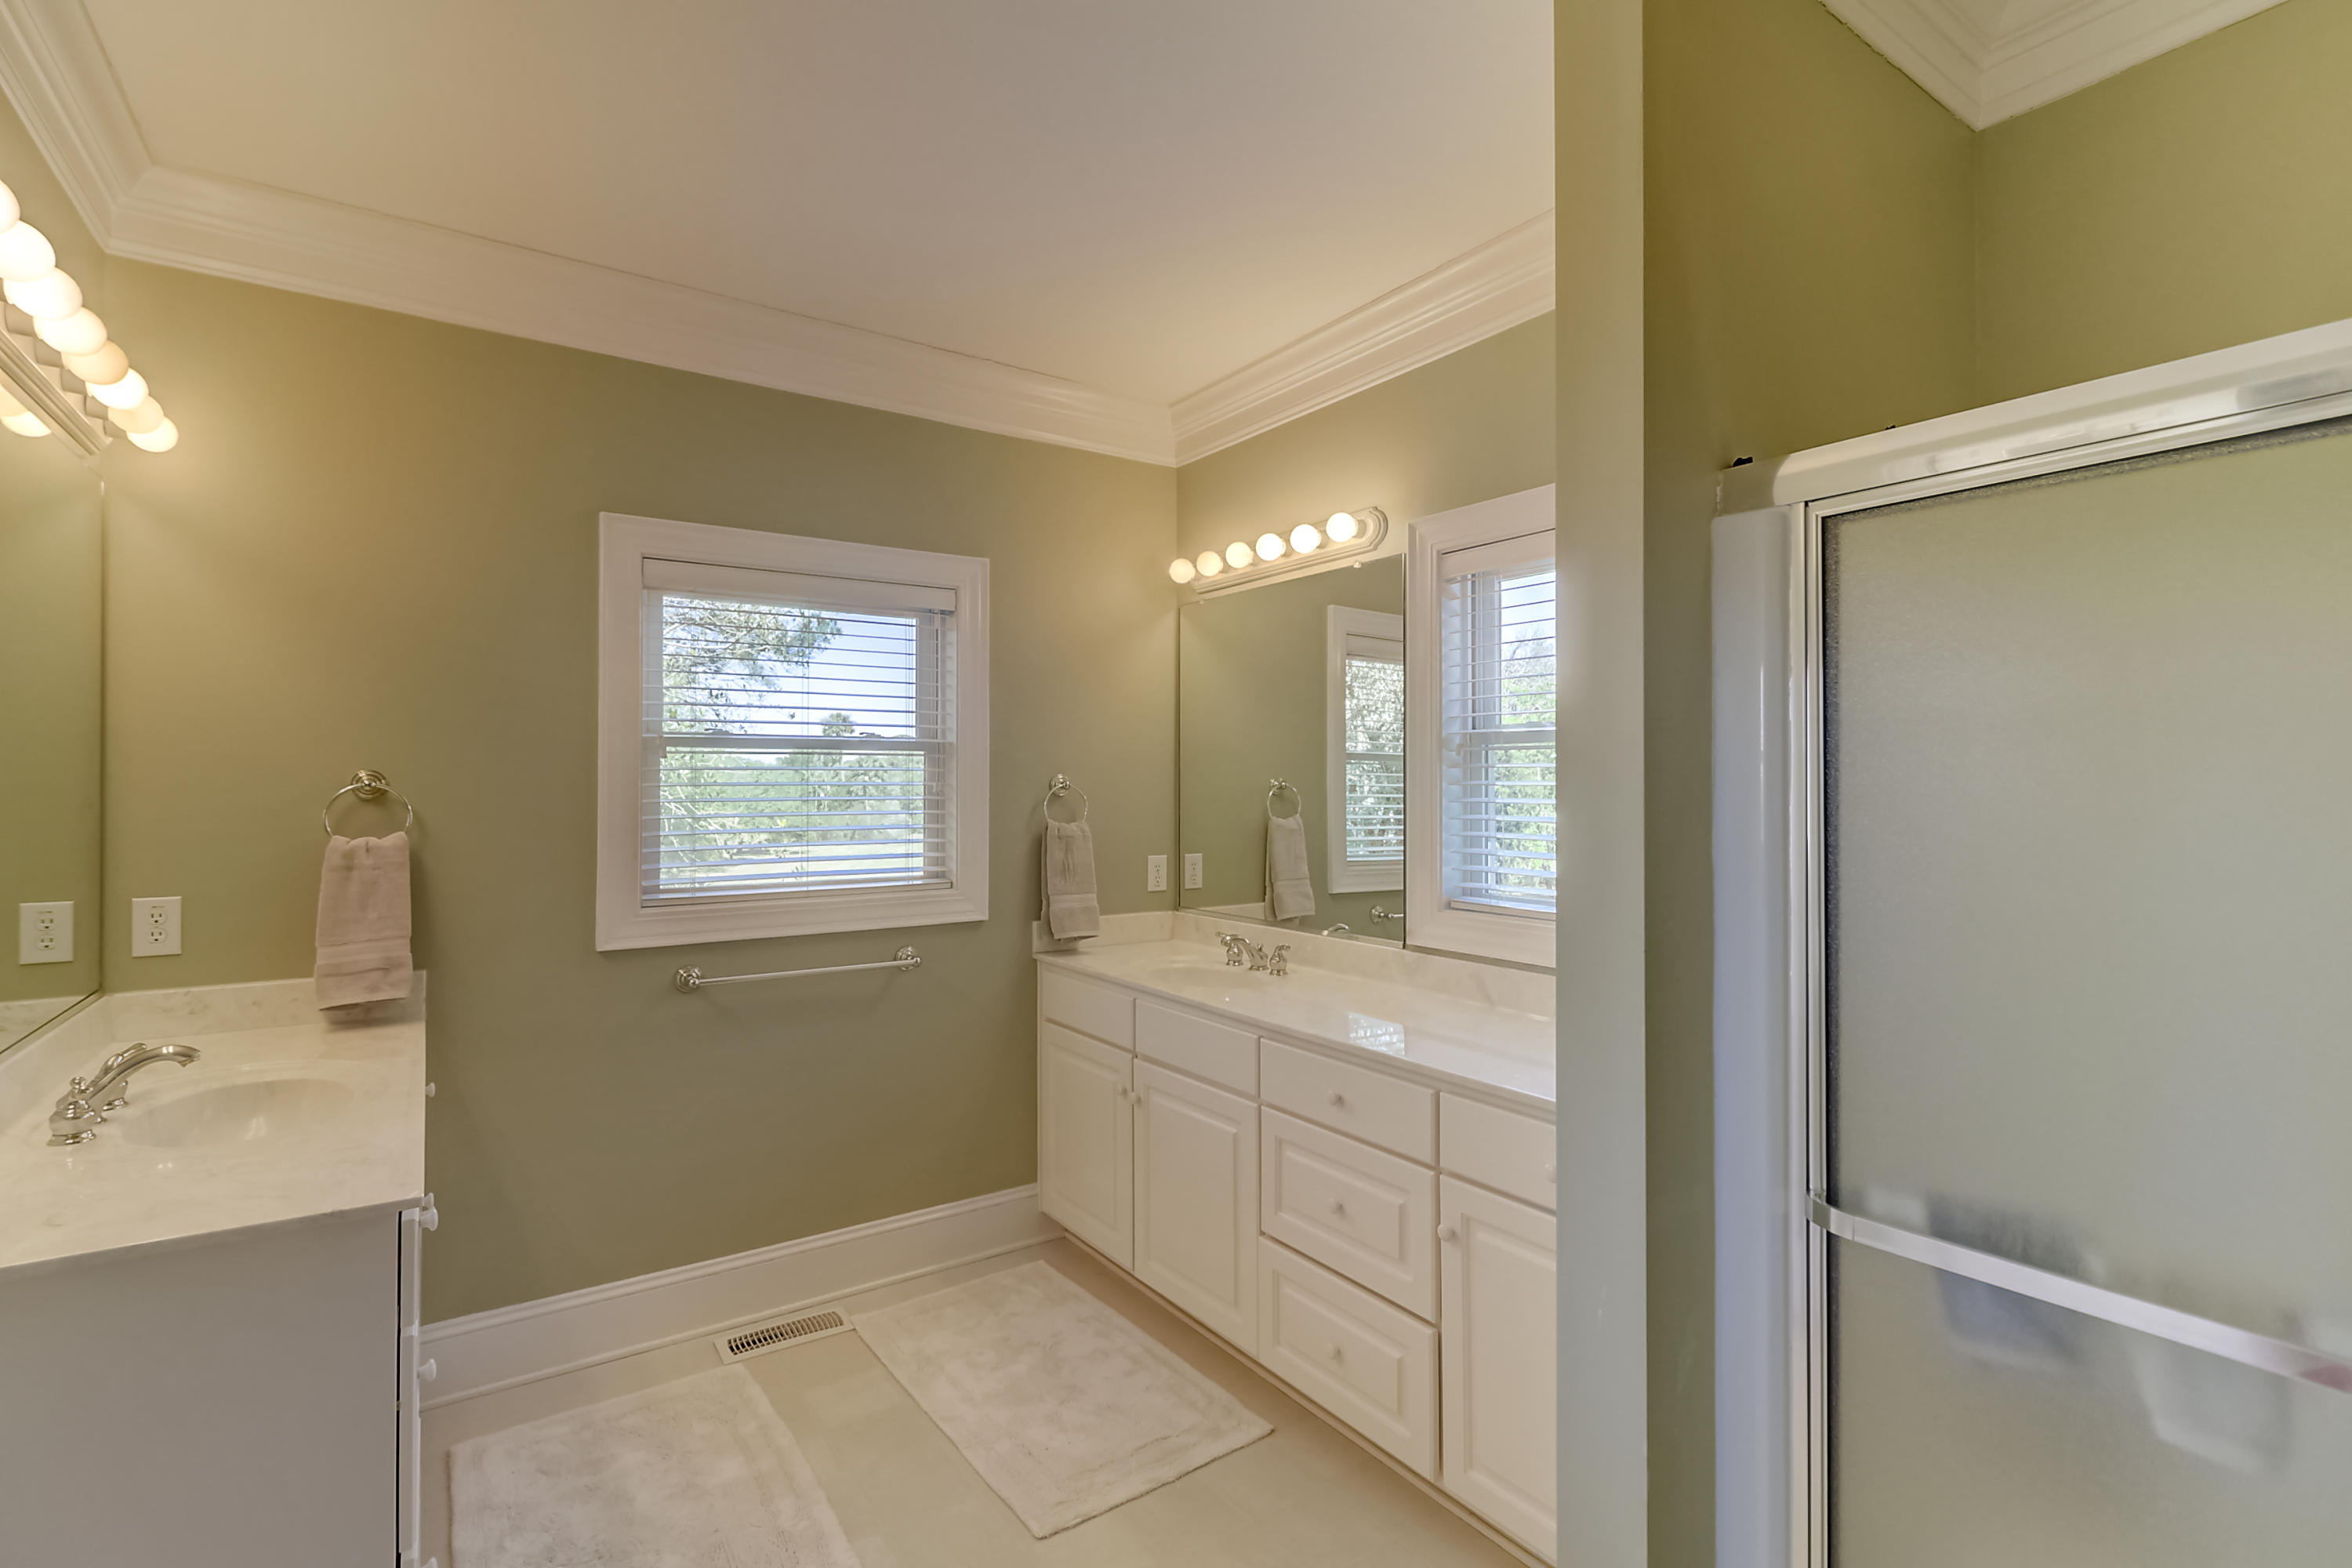 Stratton Place Homes For Sale - 1494 Stratton, Mount Pleasant, SC - 9